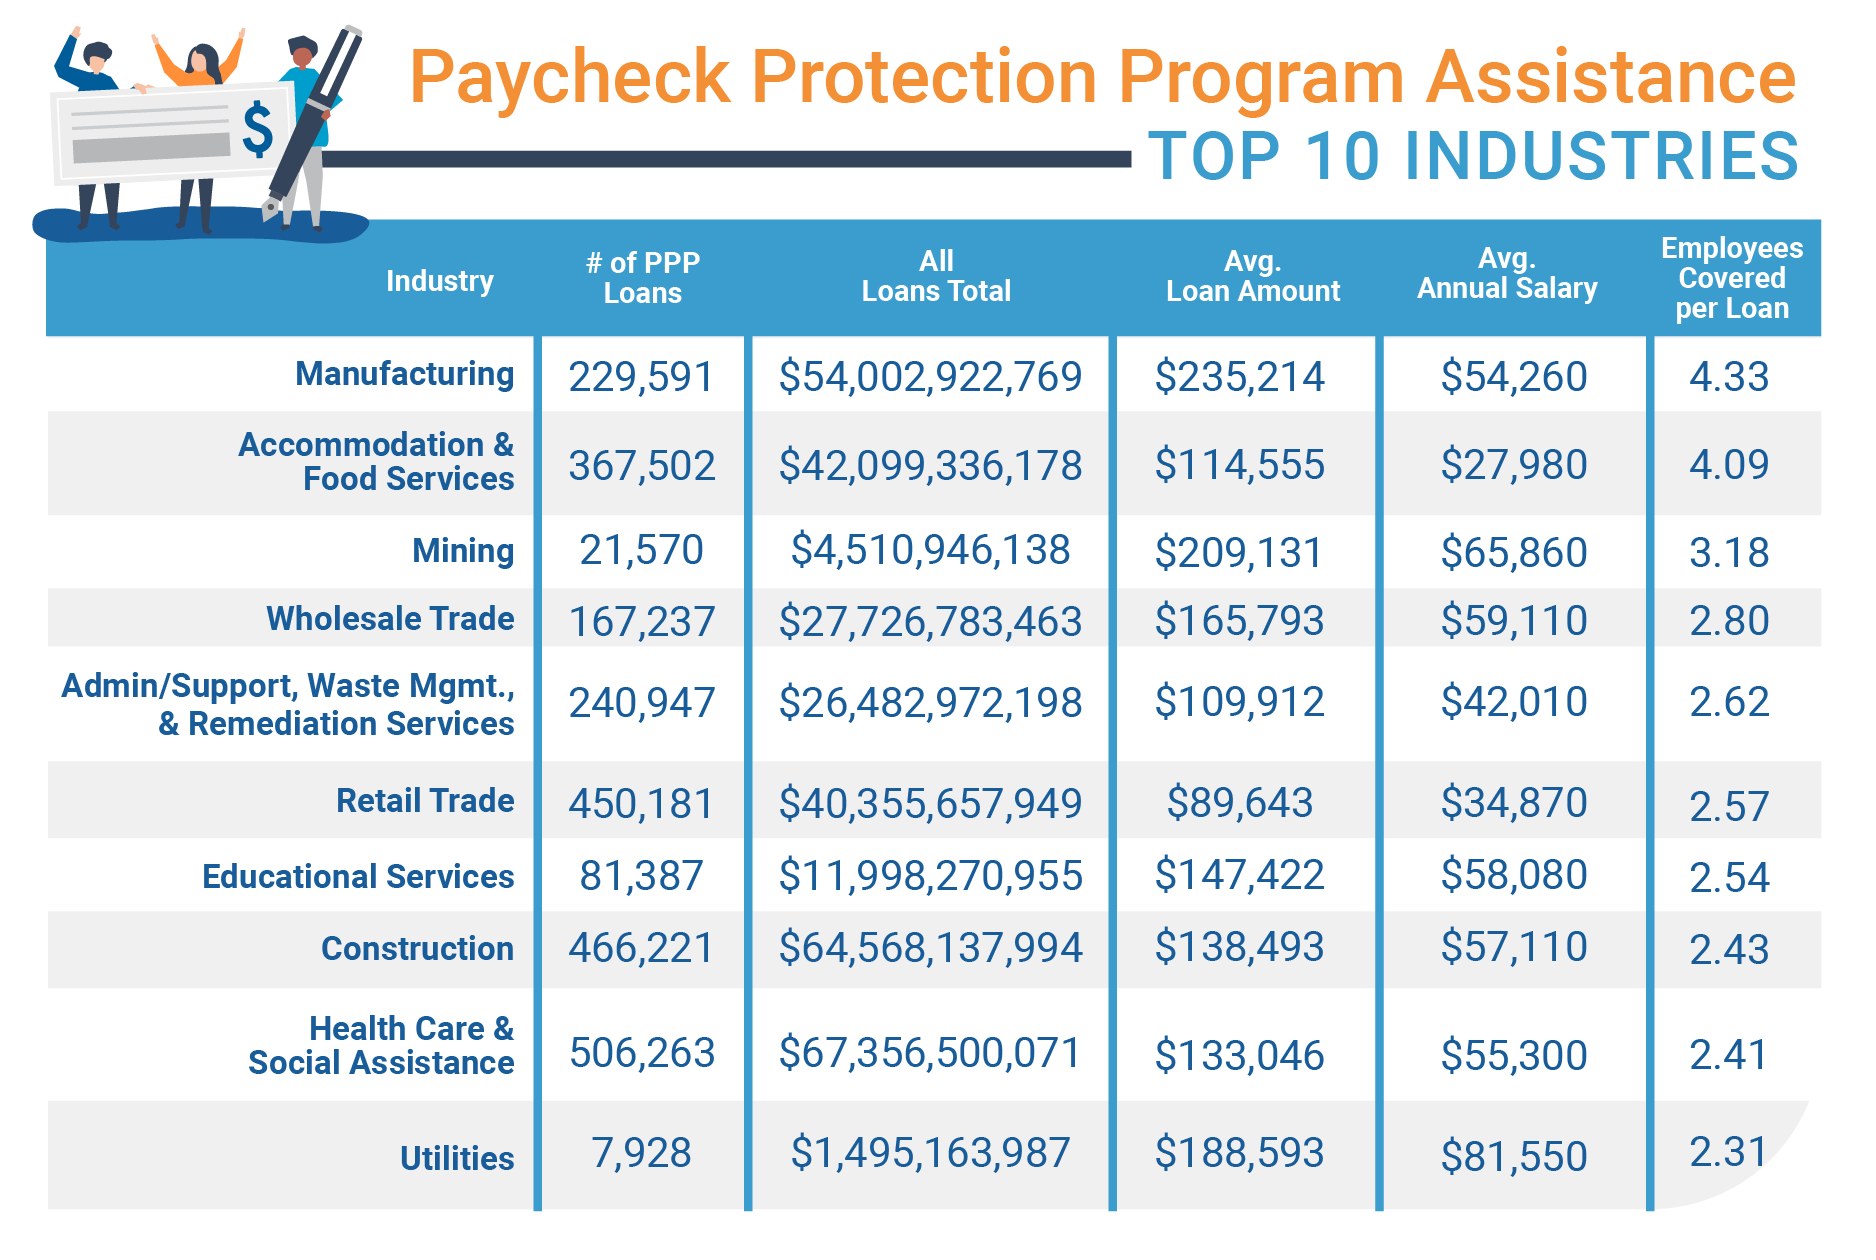 Top 10 Industries That Benefited from the Paycheck Protection Program